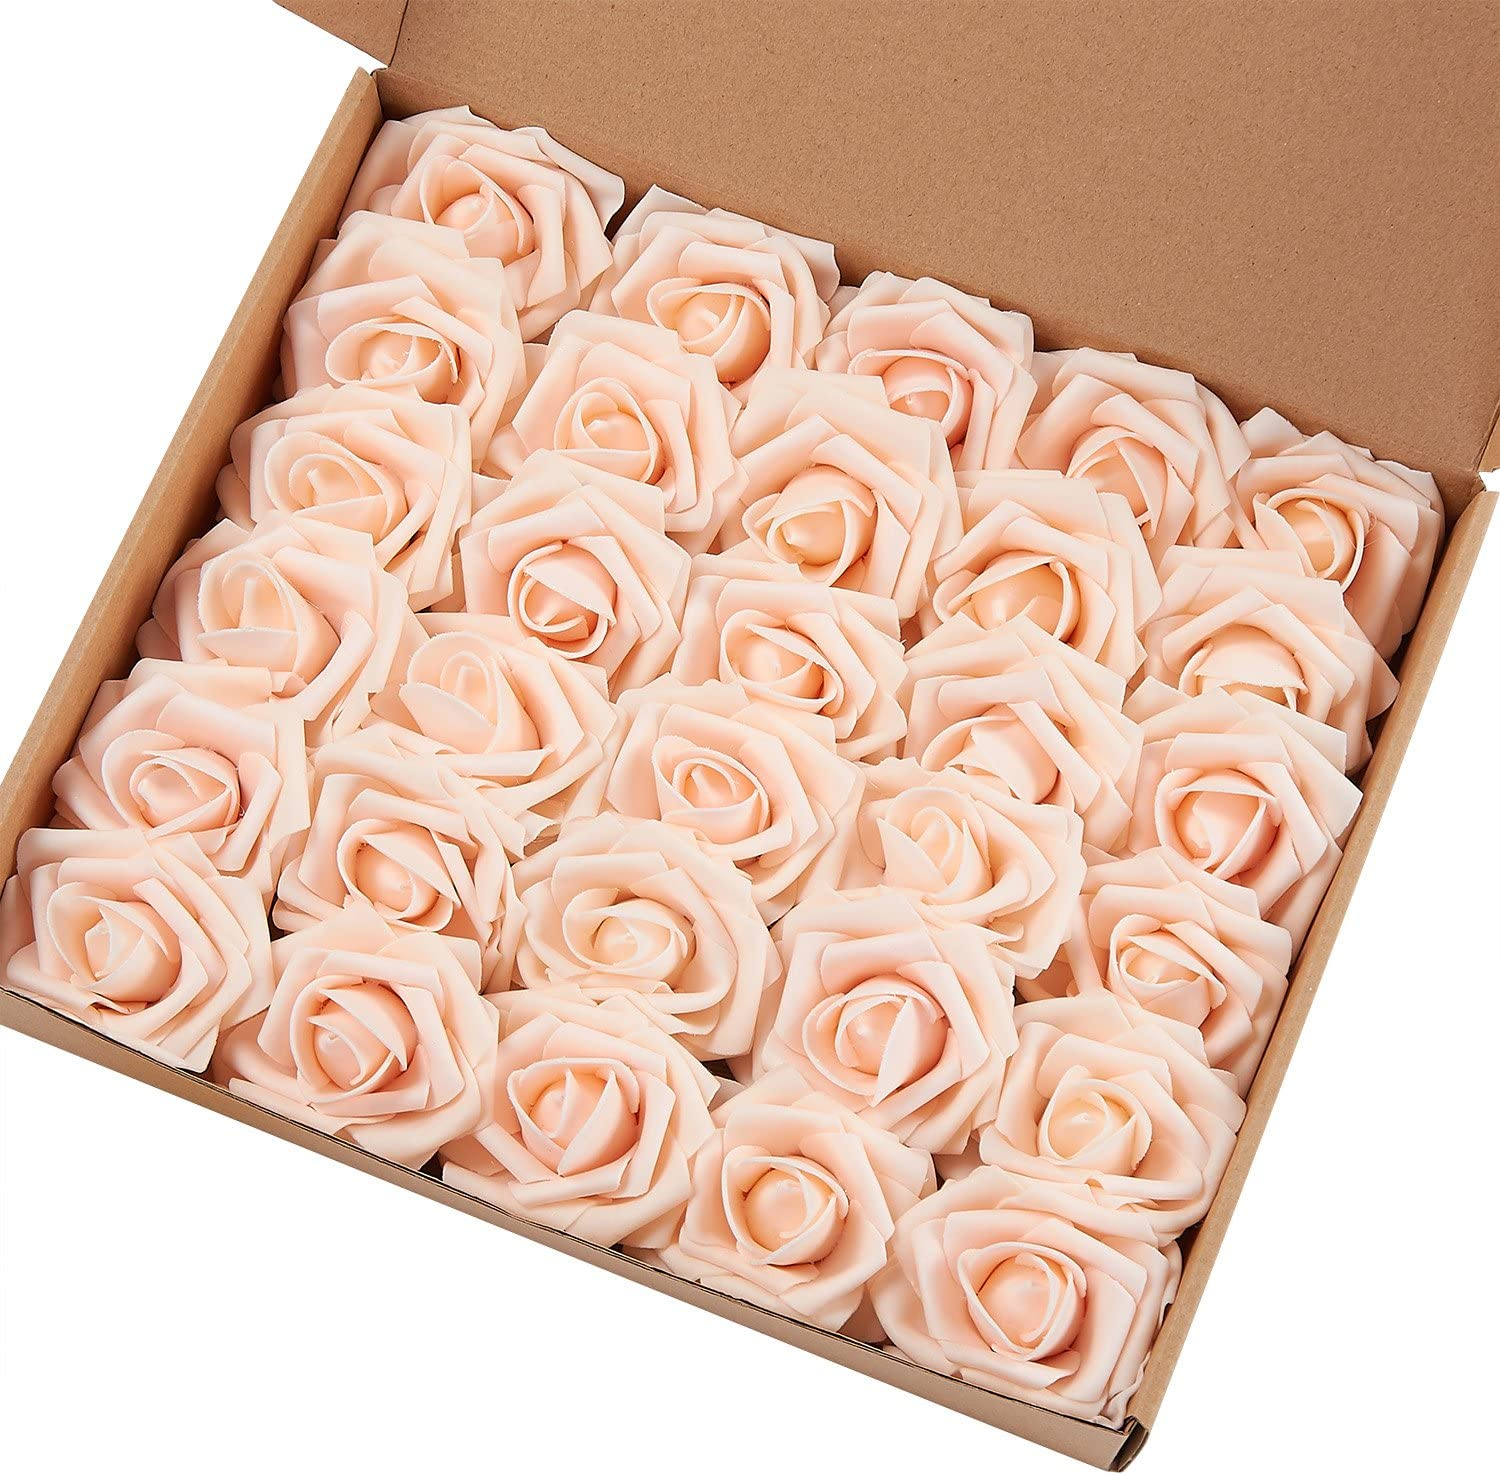 MACTING Artificial Flower Rose, 30pcs Real Touch Artificial Roses for DIY Bouquets Wedding Party Baby Shower Home Decor(Champagne)